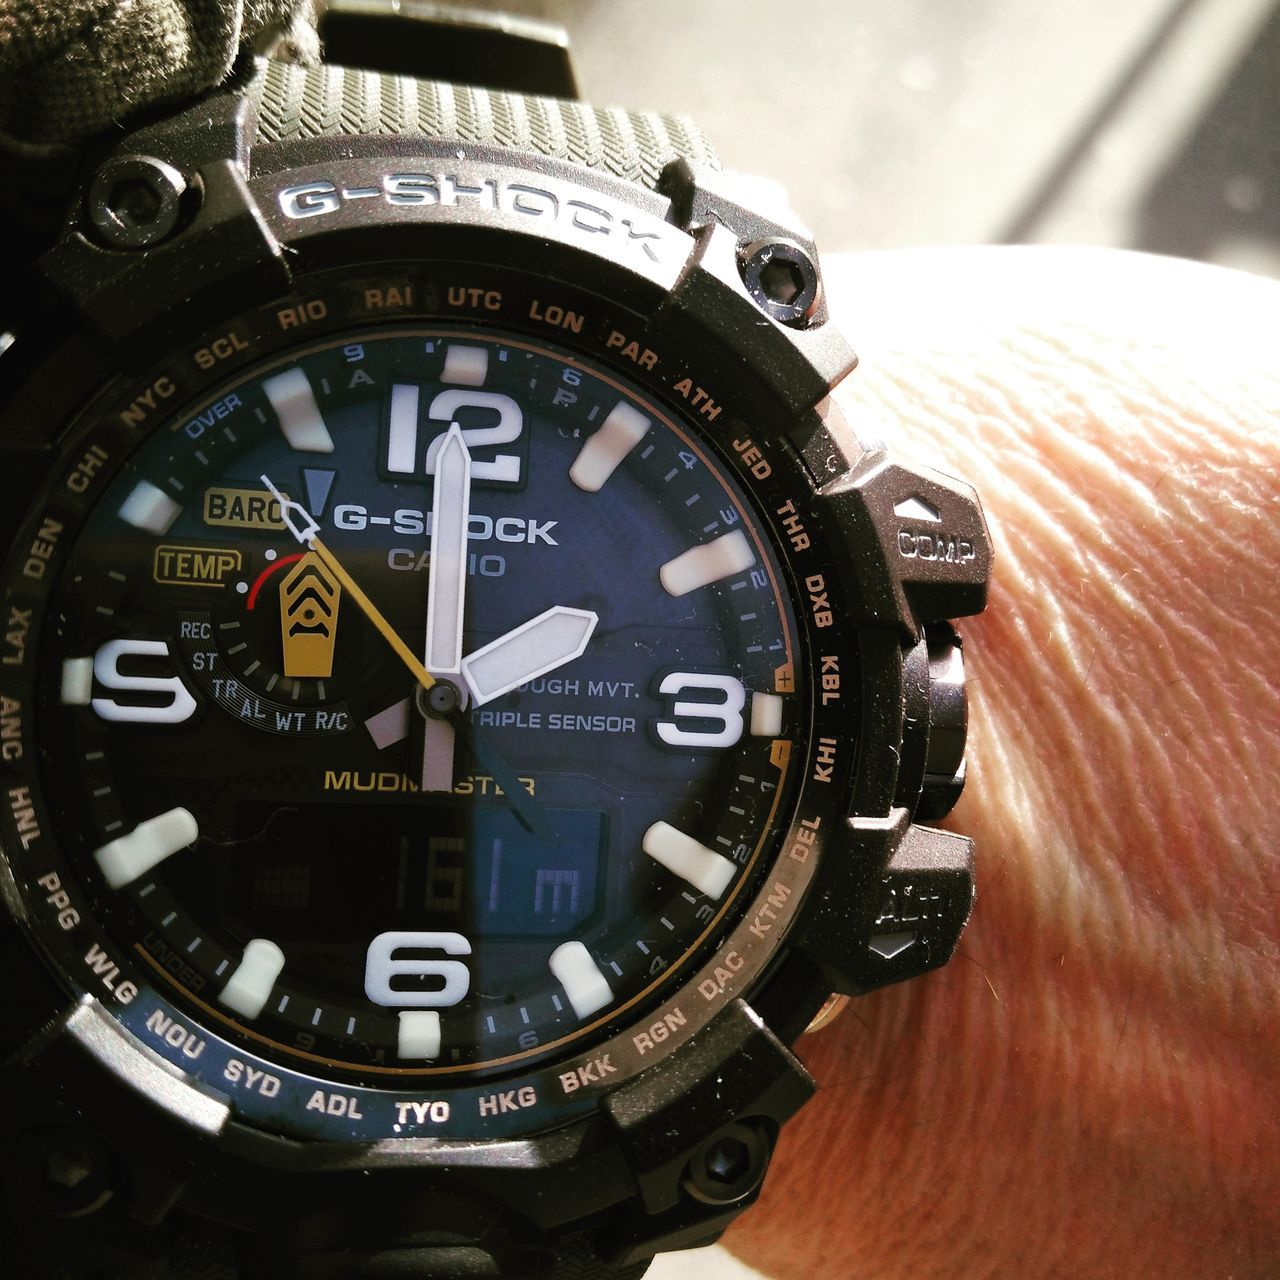 Time Clock Clock Face No People Timer Hour Hand Minute Hand Second Hand Instrument Of Time Casiowatch G-Shock ⌚ Gshockwatch GshockCasio Gschock Mudmaster gwg-1000